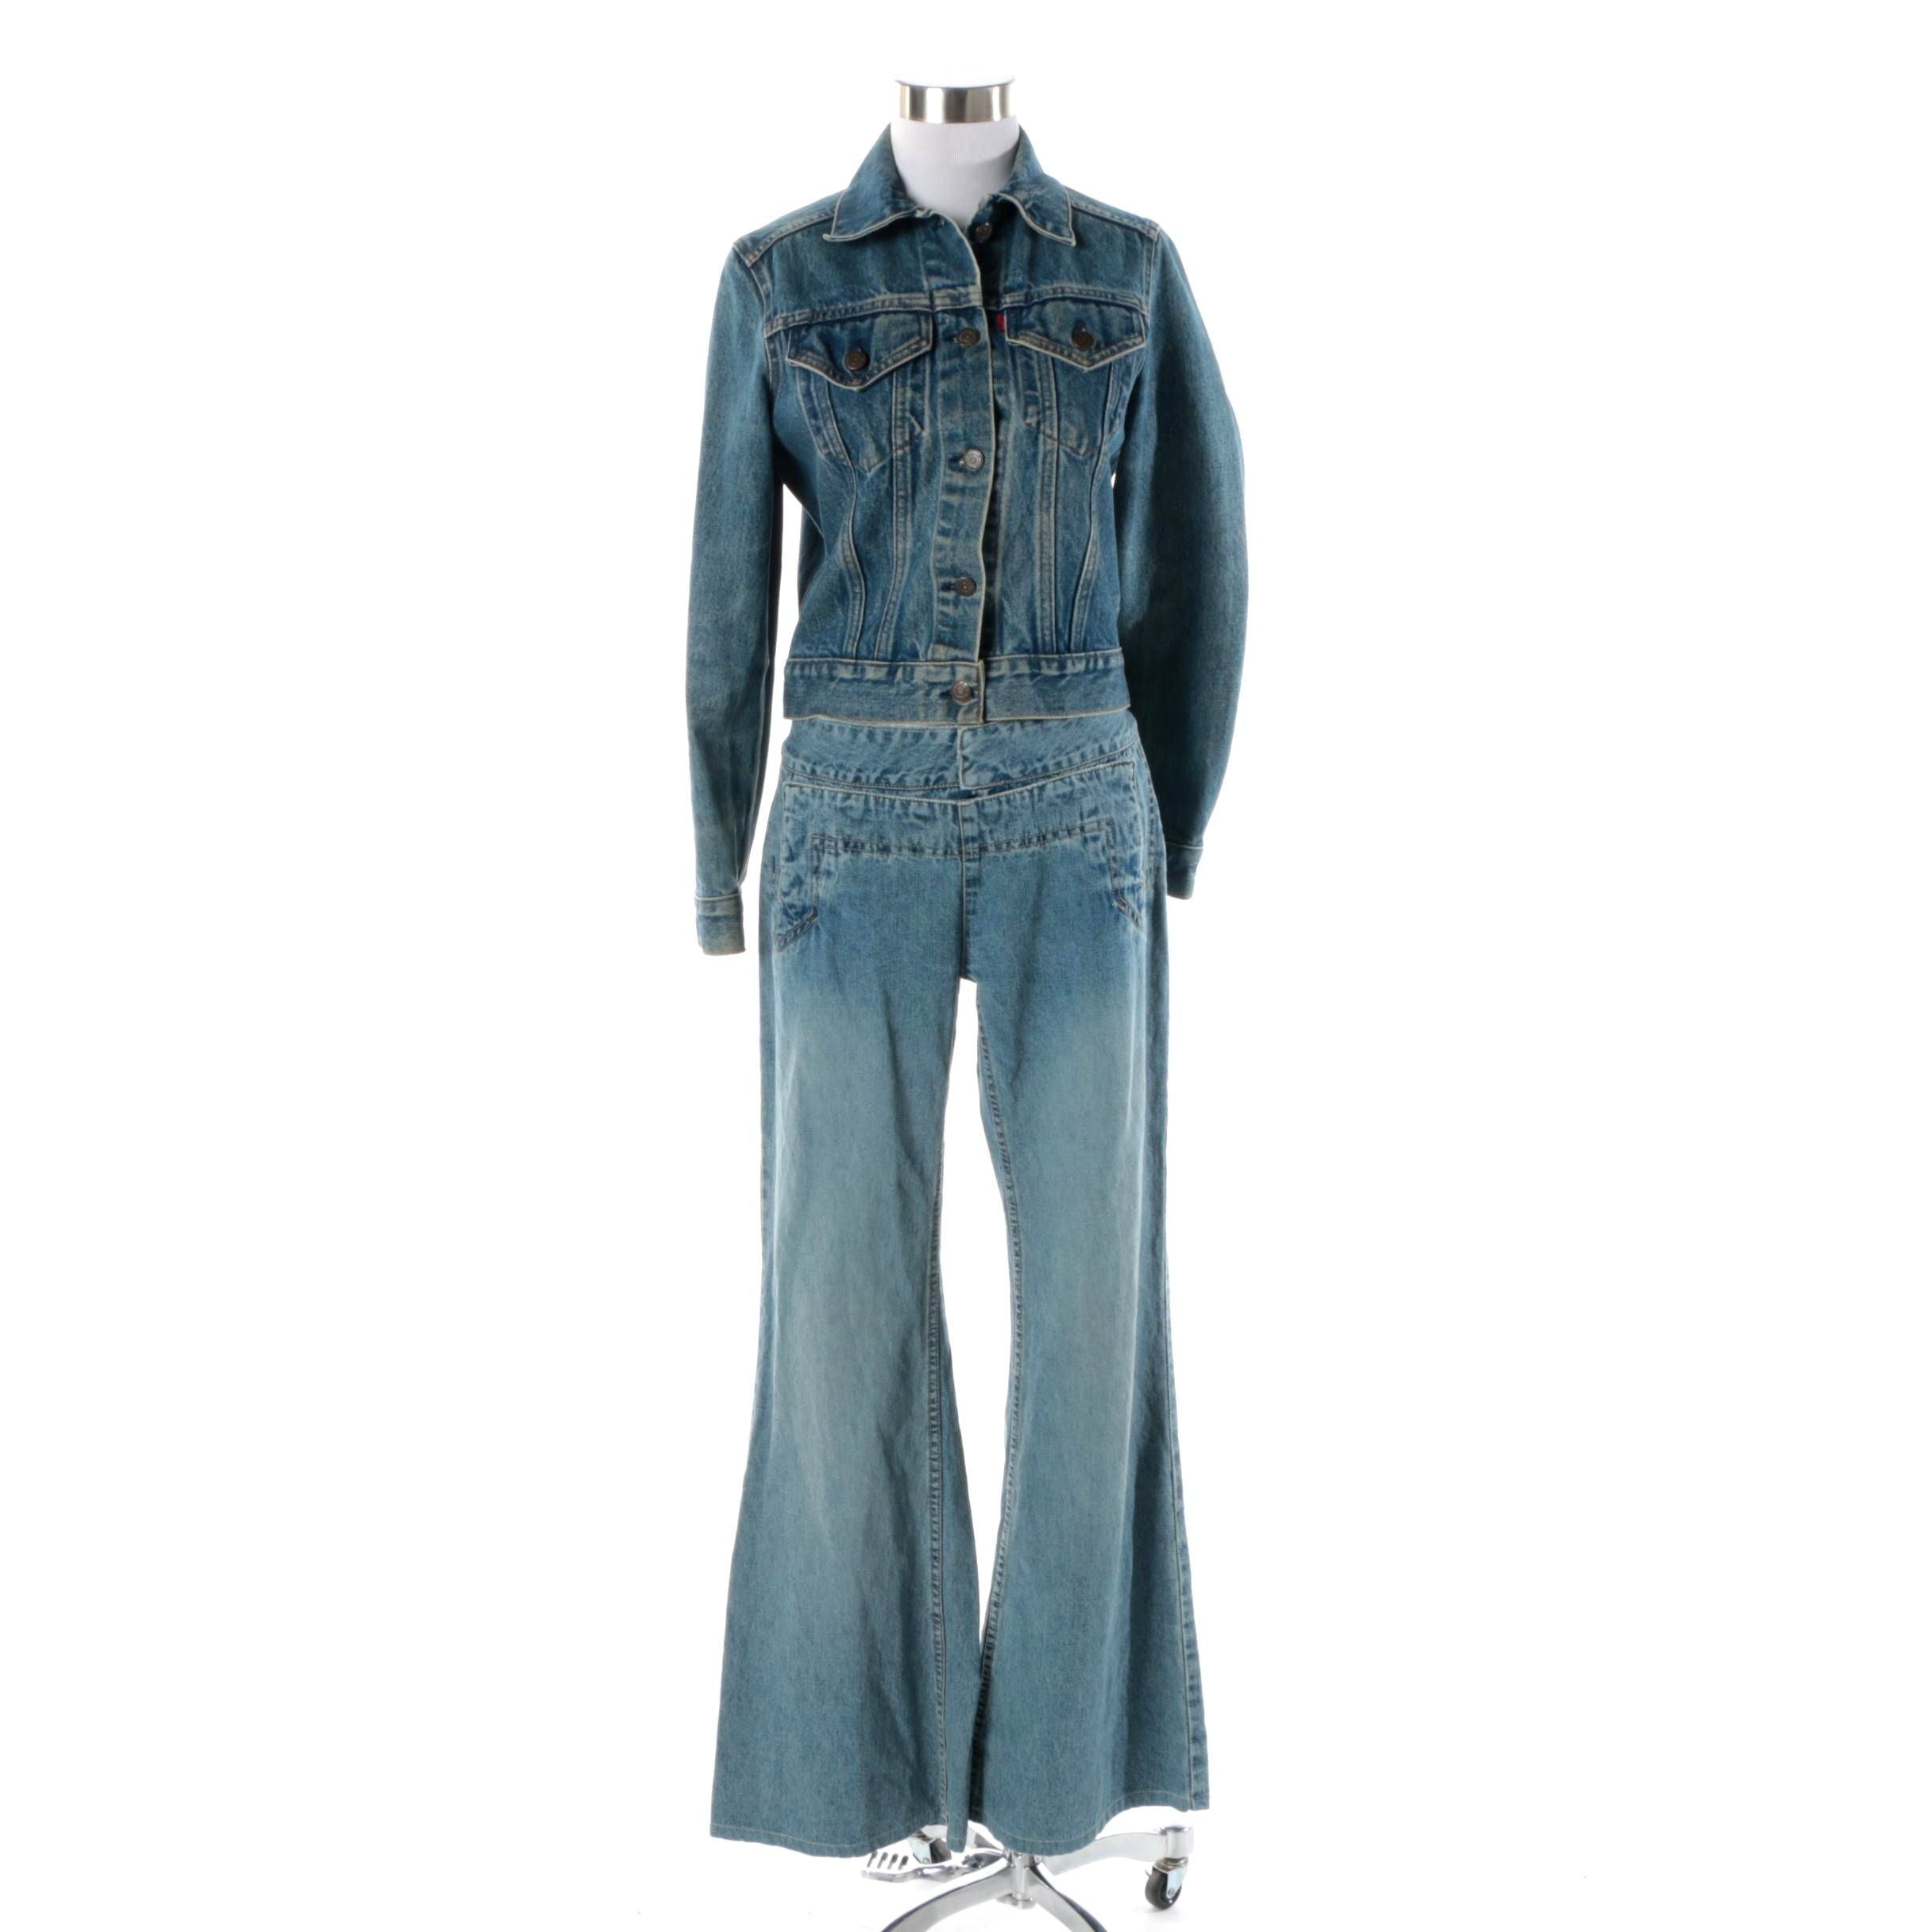 Women's Levi's Denim Jacket and Jill Stuart Flared Leg Jeans